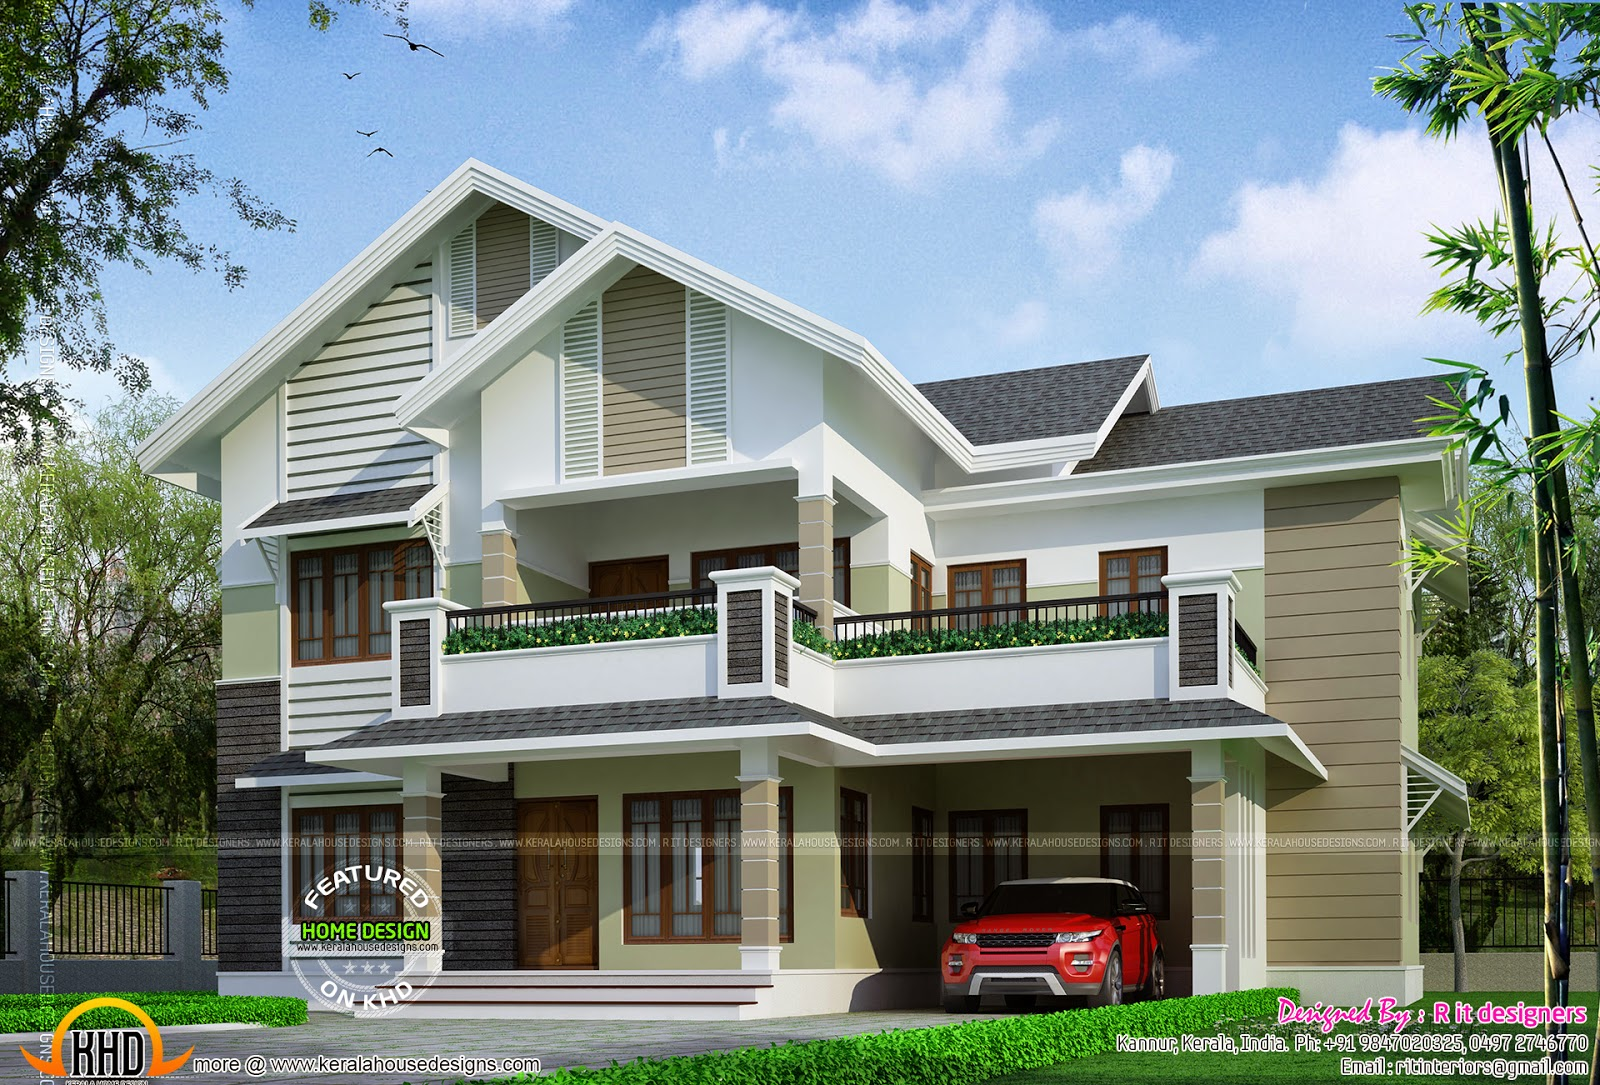 Proposed house in kannur kerala kerala home design and for Good house designs